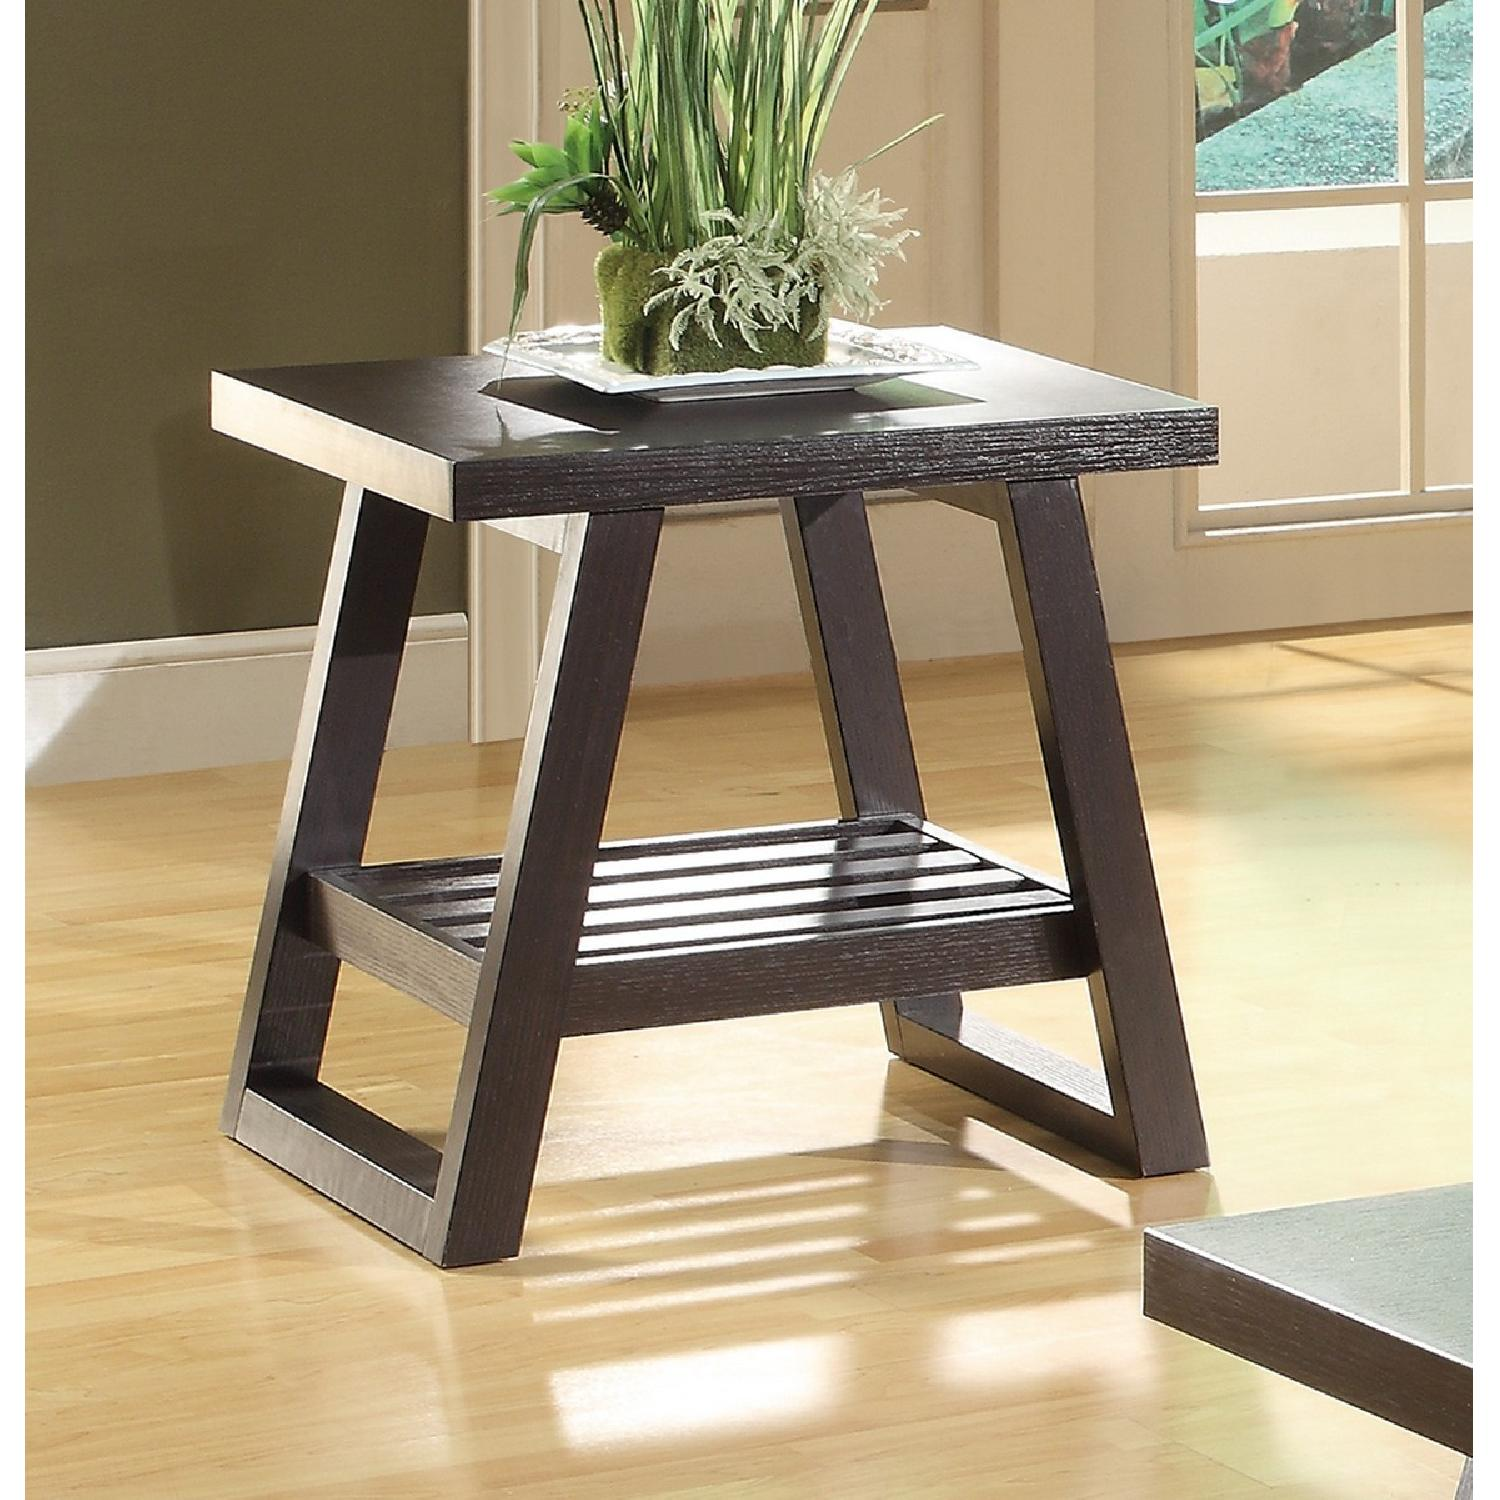 Cappuccino End Table with Slatted Bottom Shelf-0